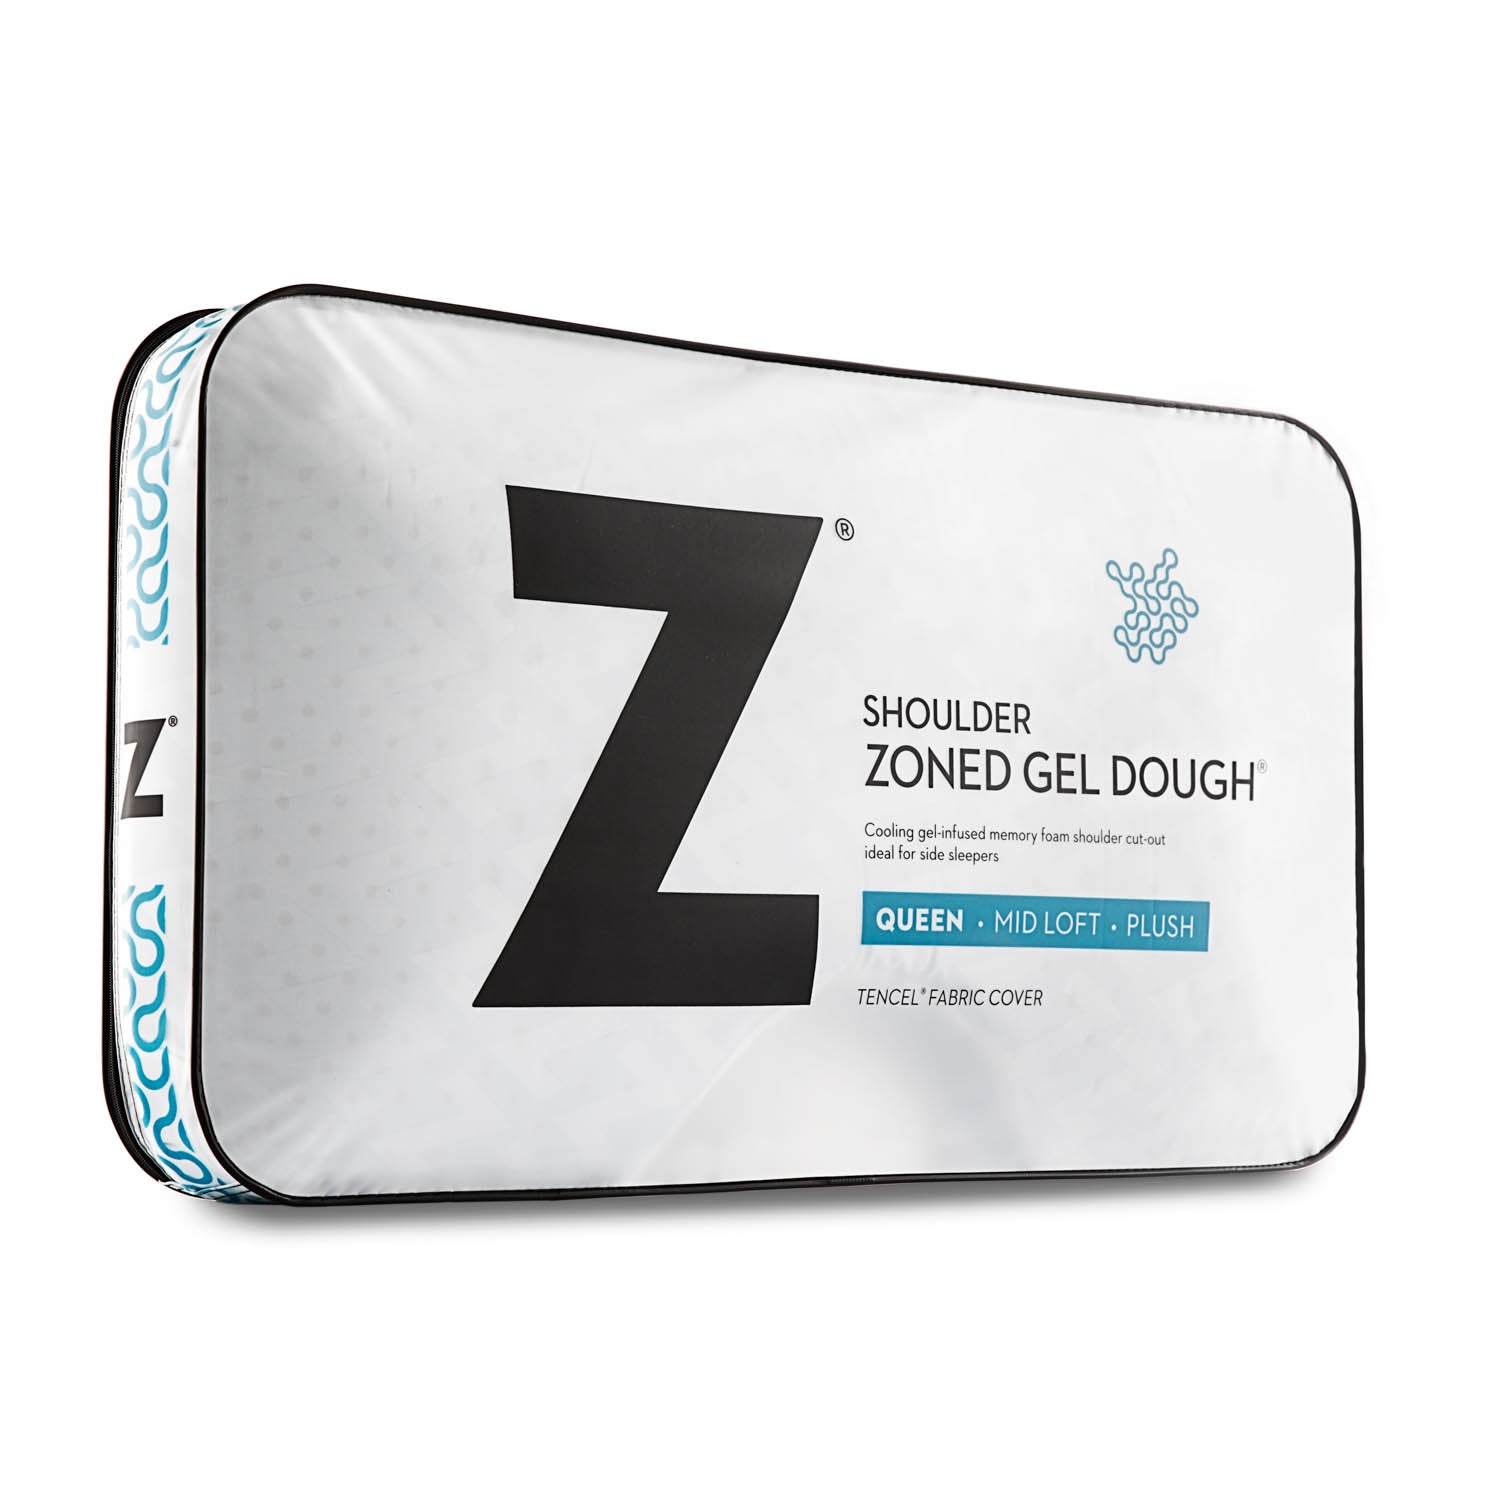 Zoned Gel Dough Shoulder Cutout Pillow